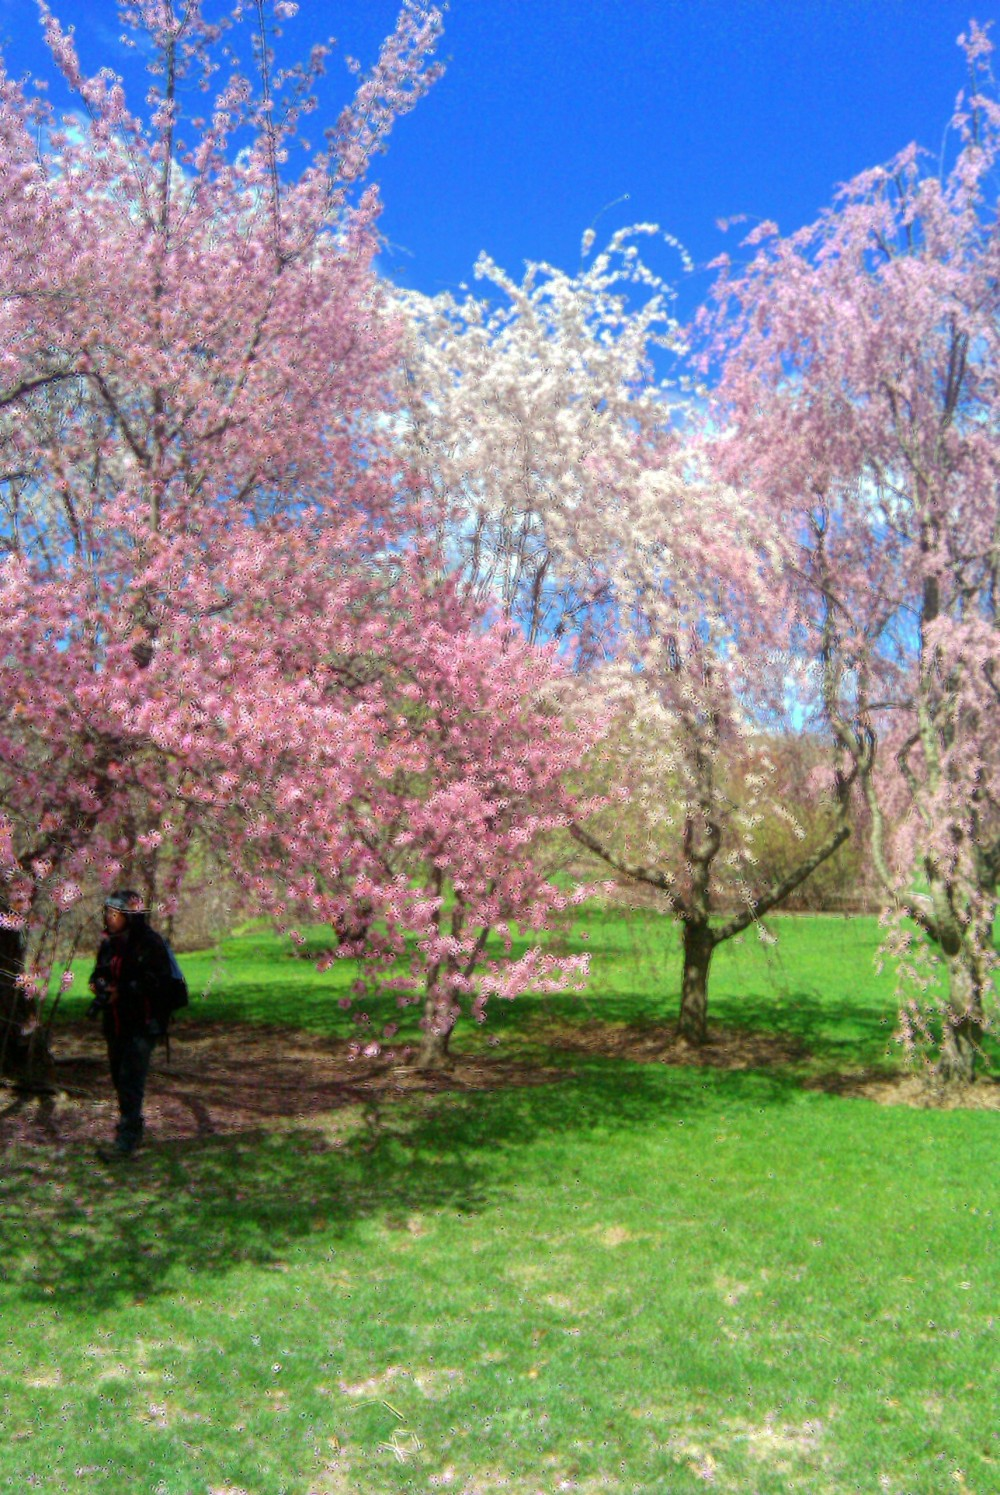 Pink and white fruit trees, Arnold Arboretum, 10 April 2010